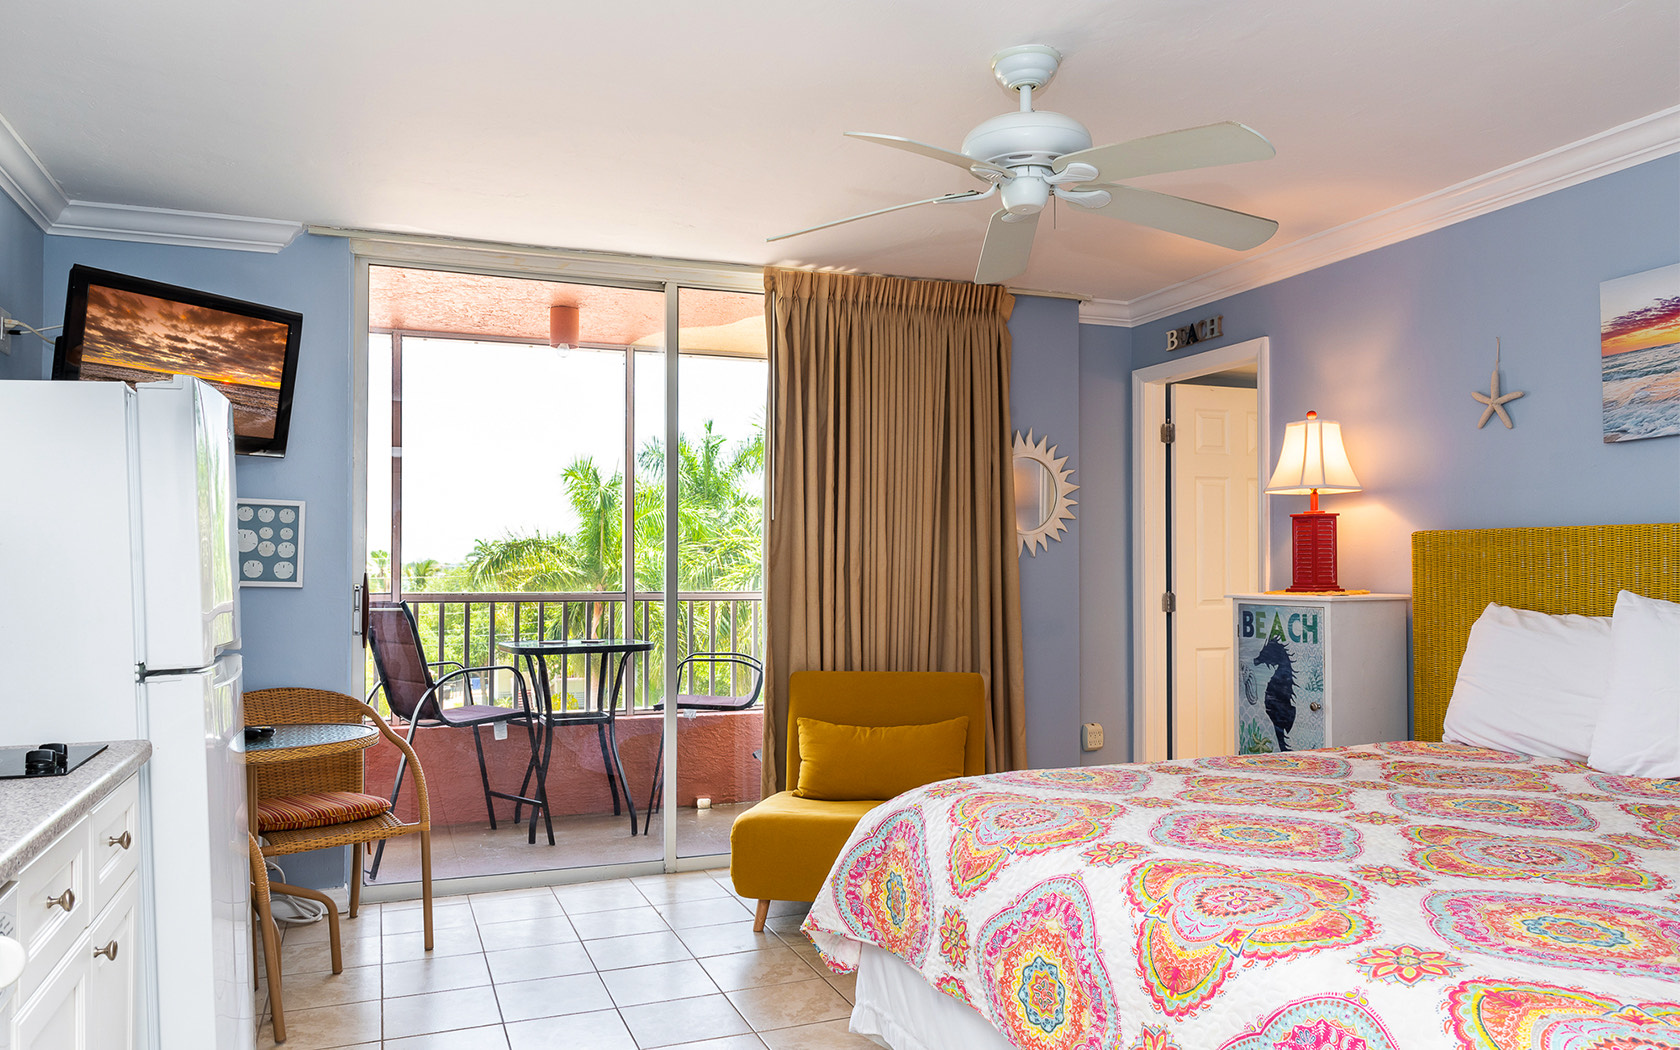 Casa Play Resort Bayview Suite Master Bedroom with seating area